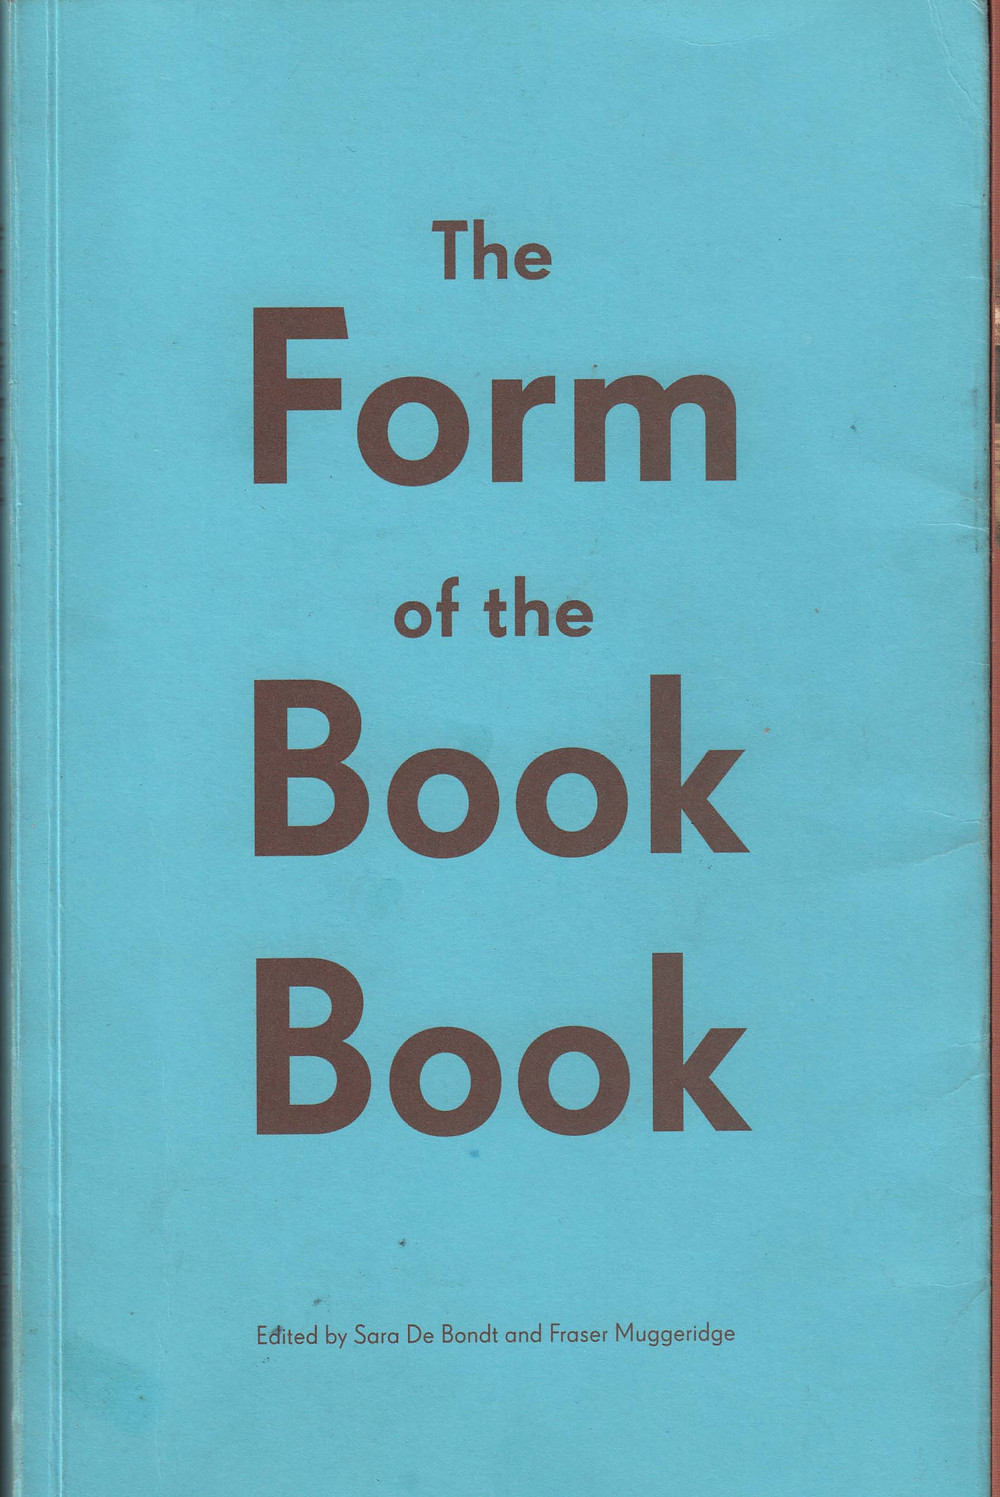 the form book book.jpg